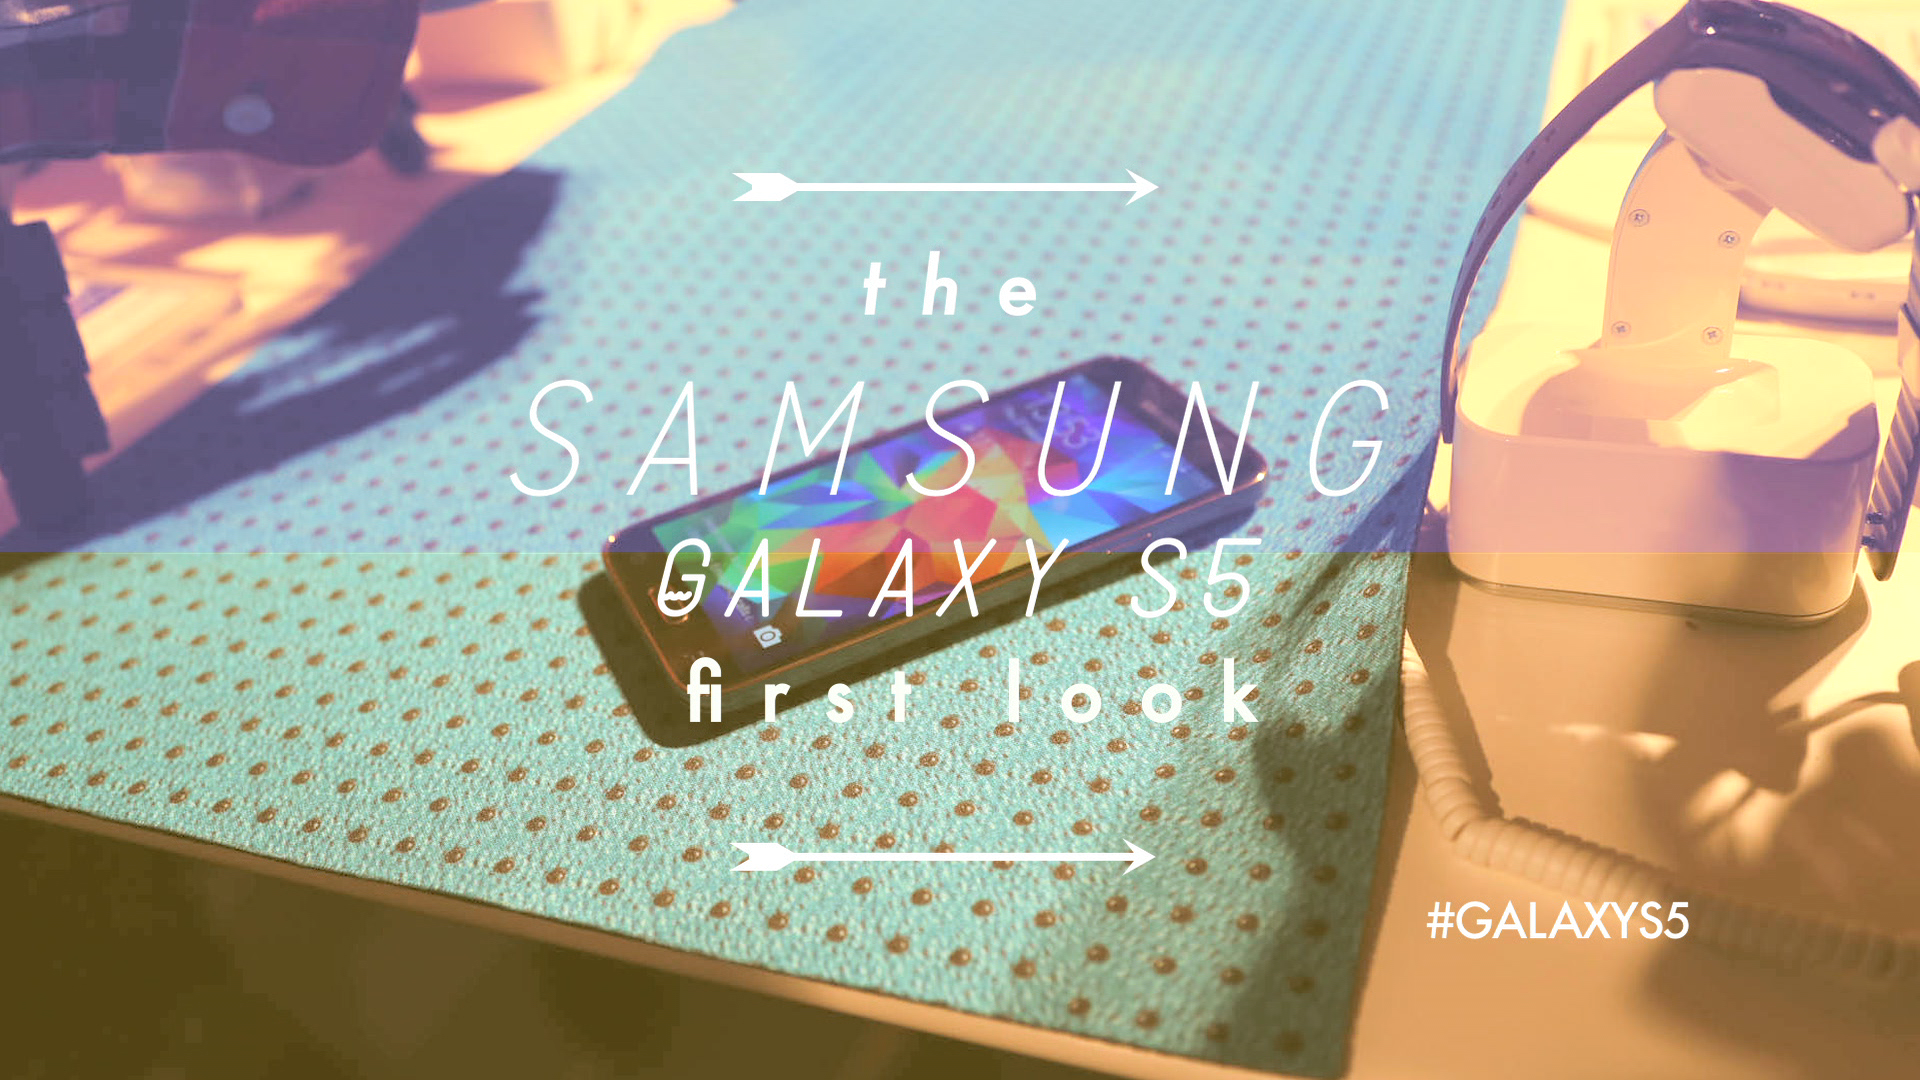 The Samsung Galaxy S5 First Look